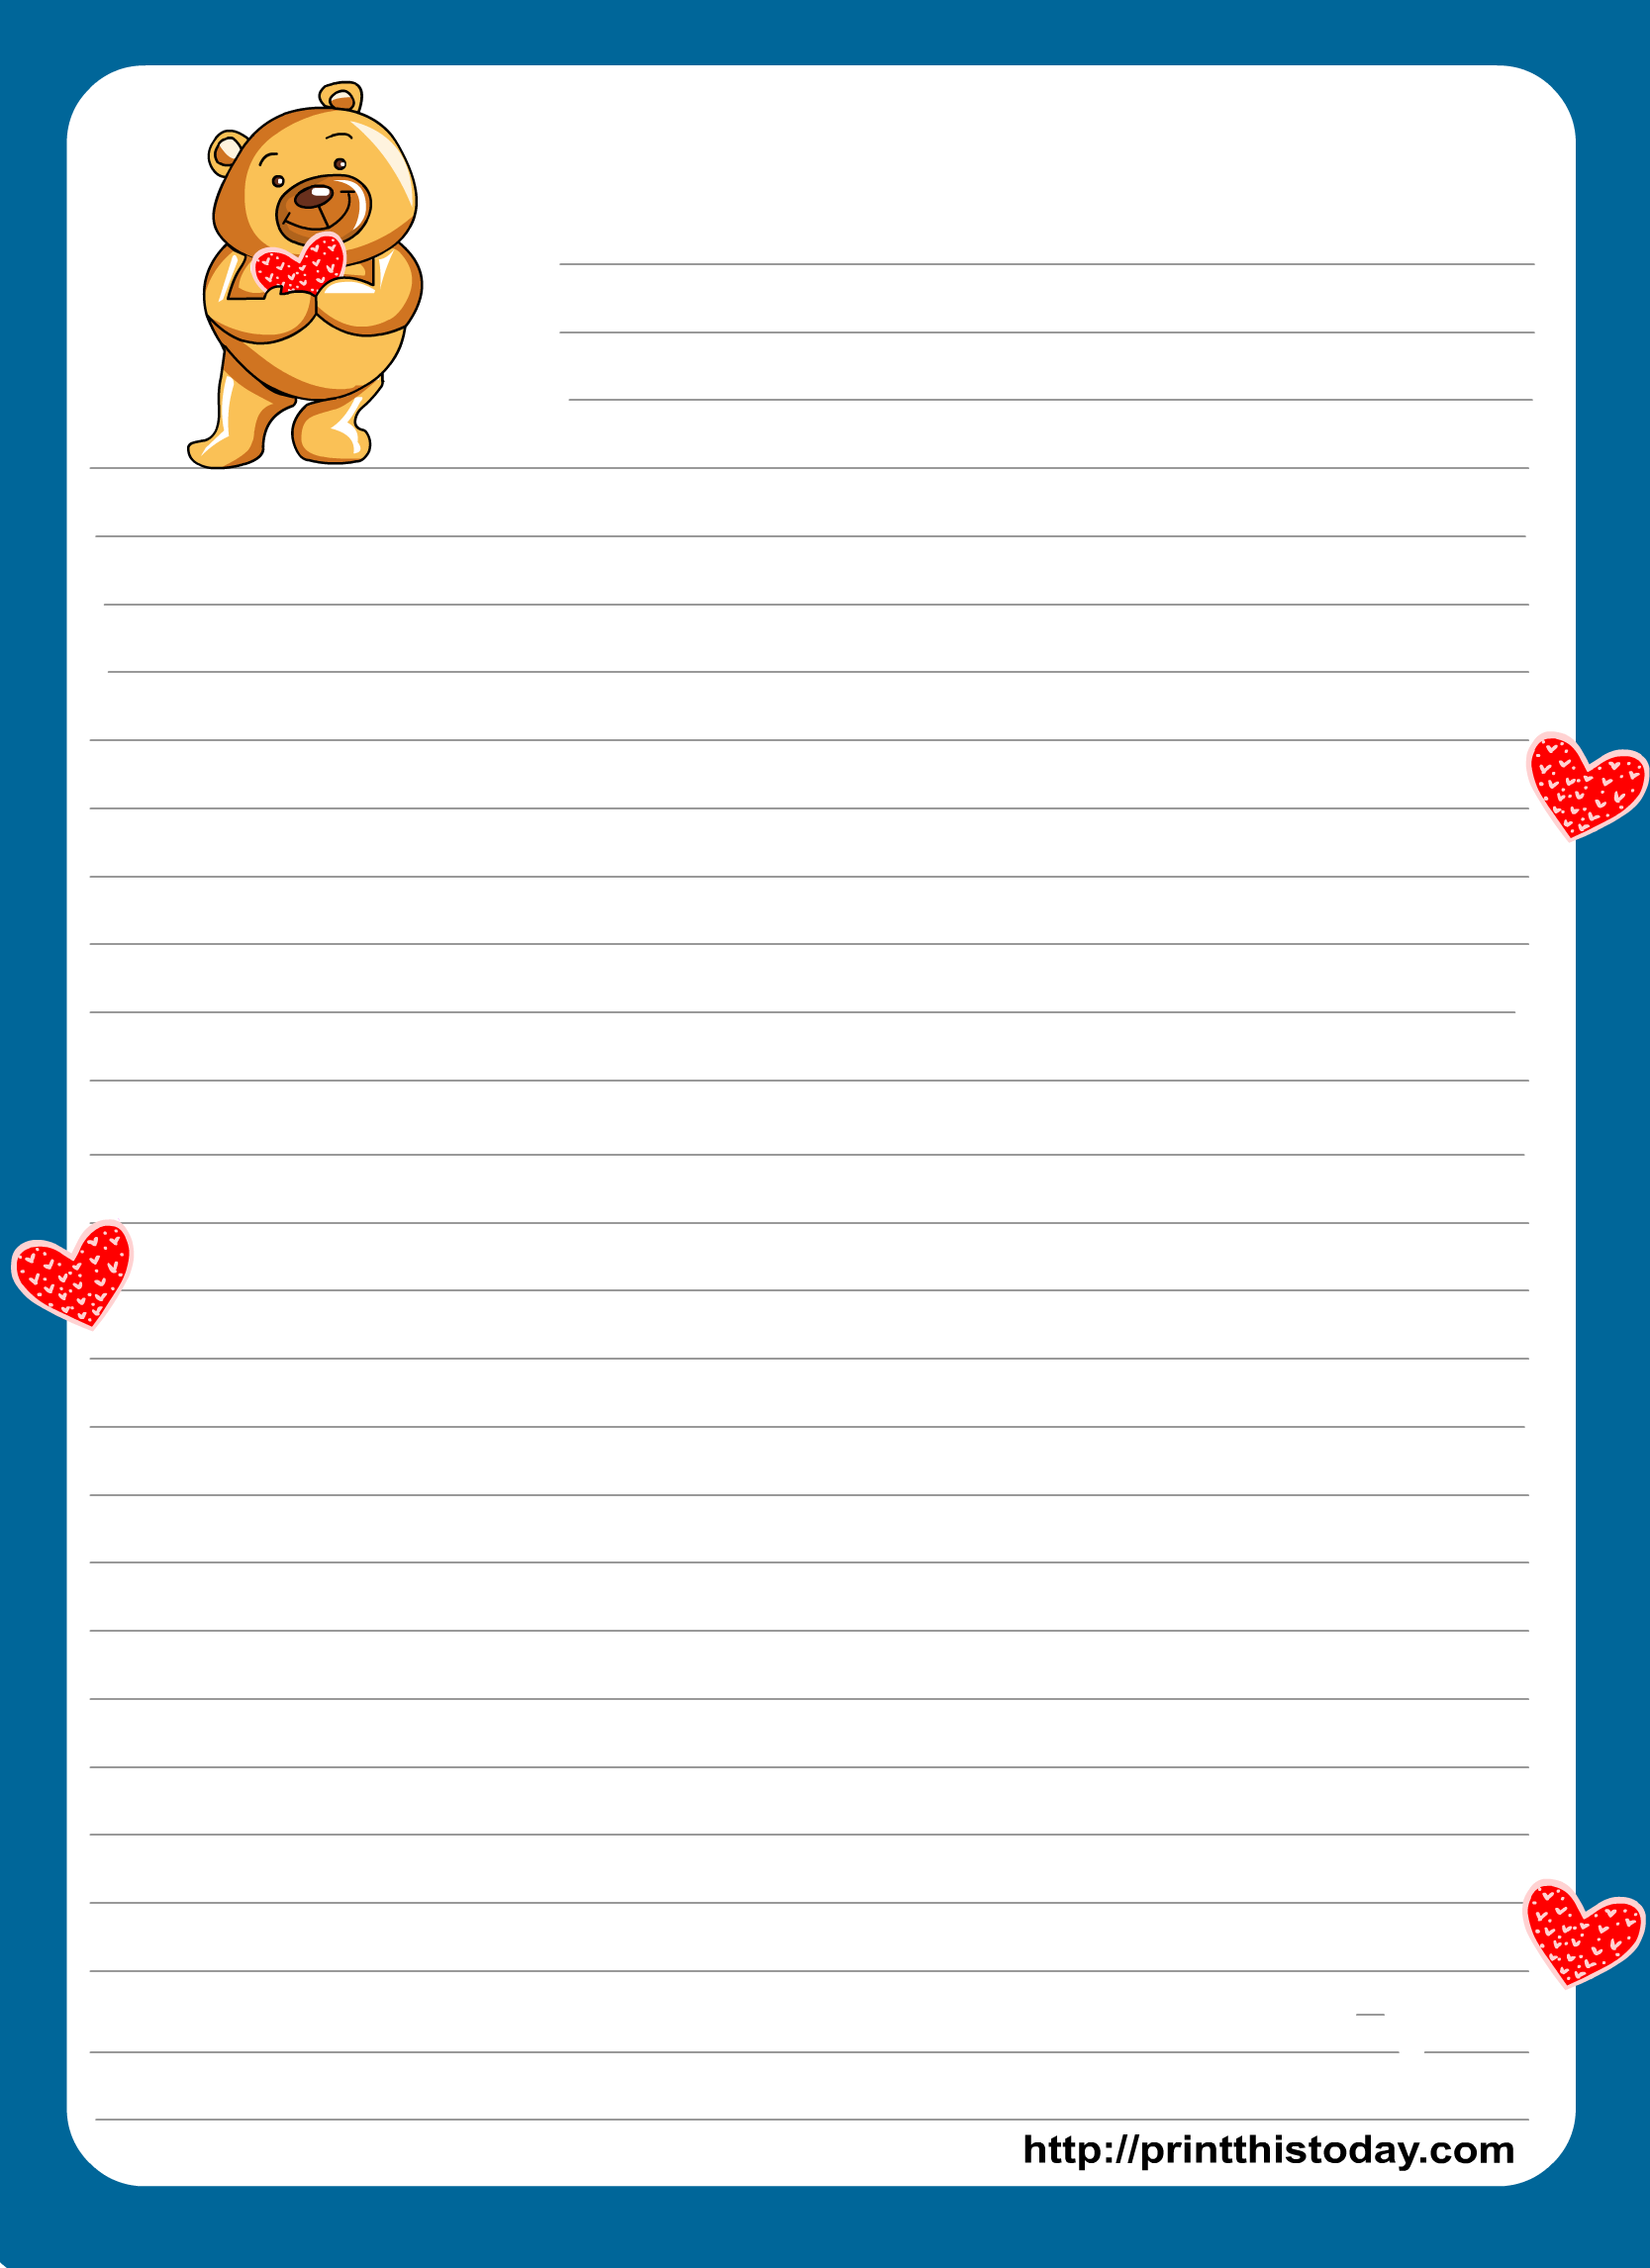 Teddy Bear Writing Paper For Kids Teddy Bear Writing Paper For Kids.  Printable ...